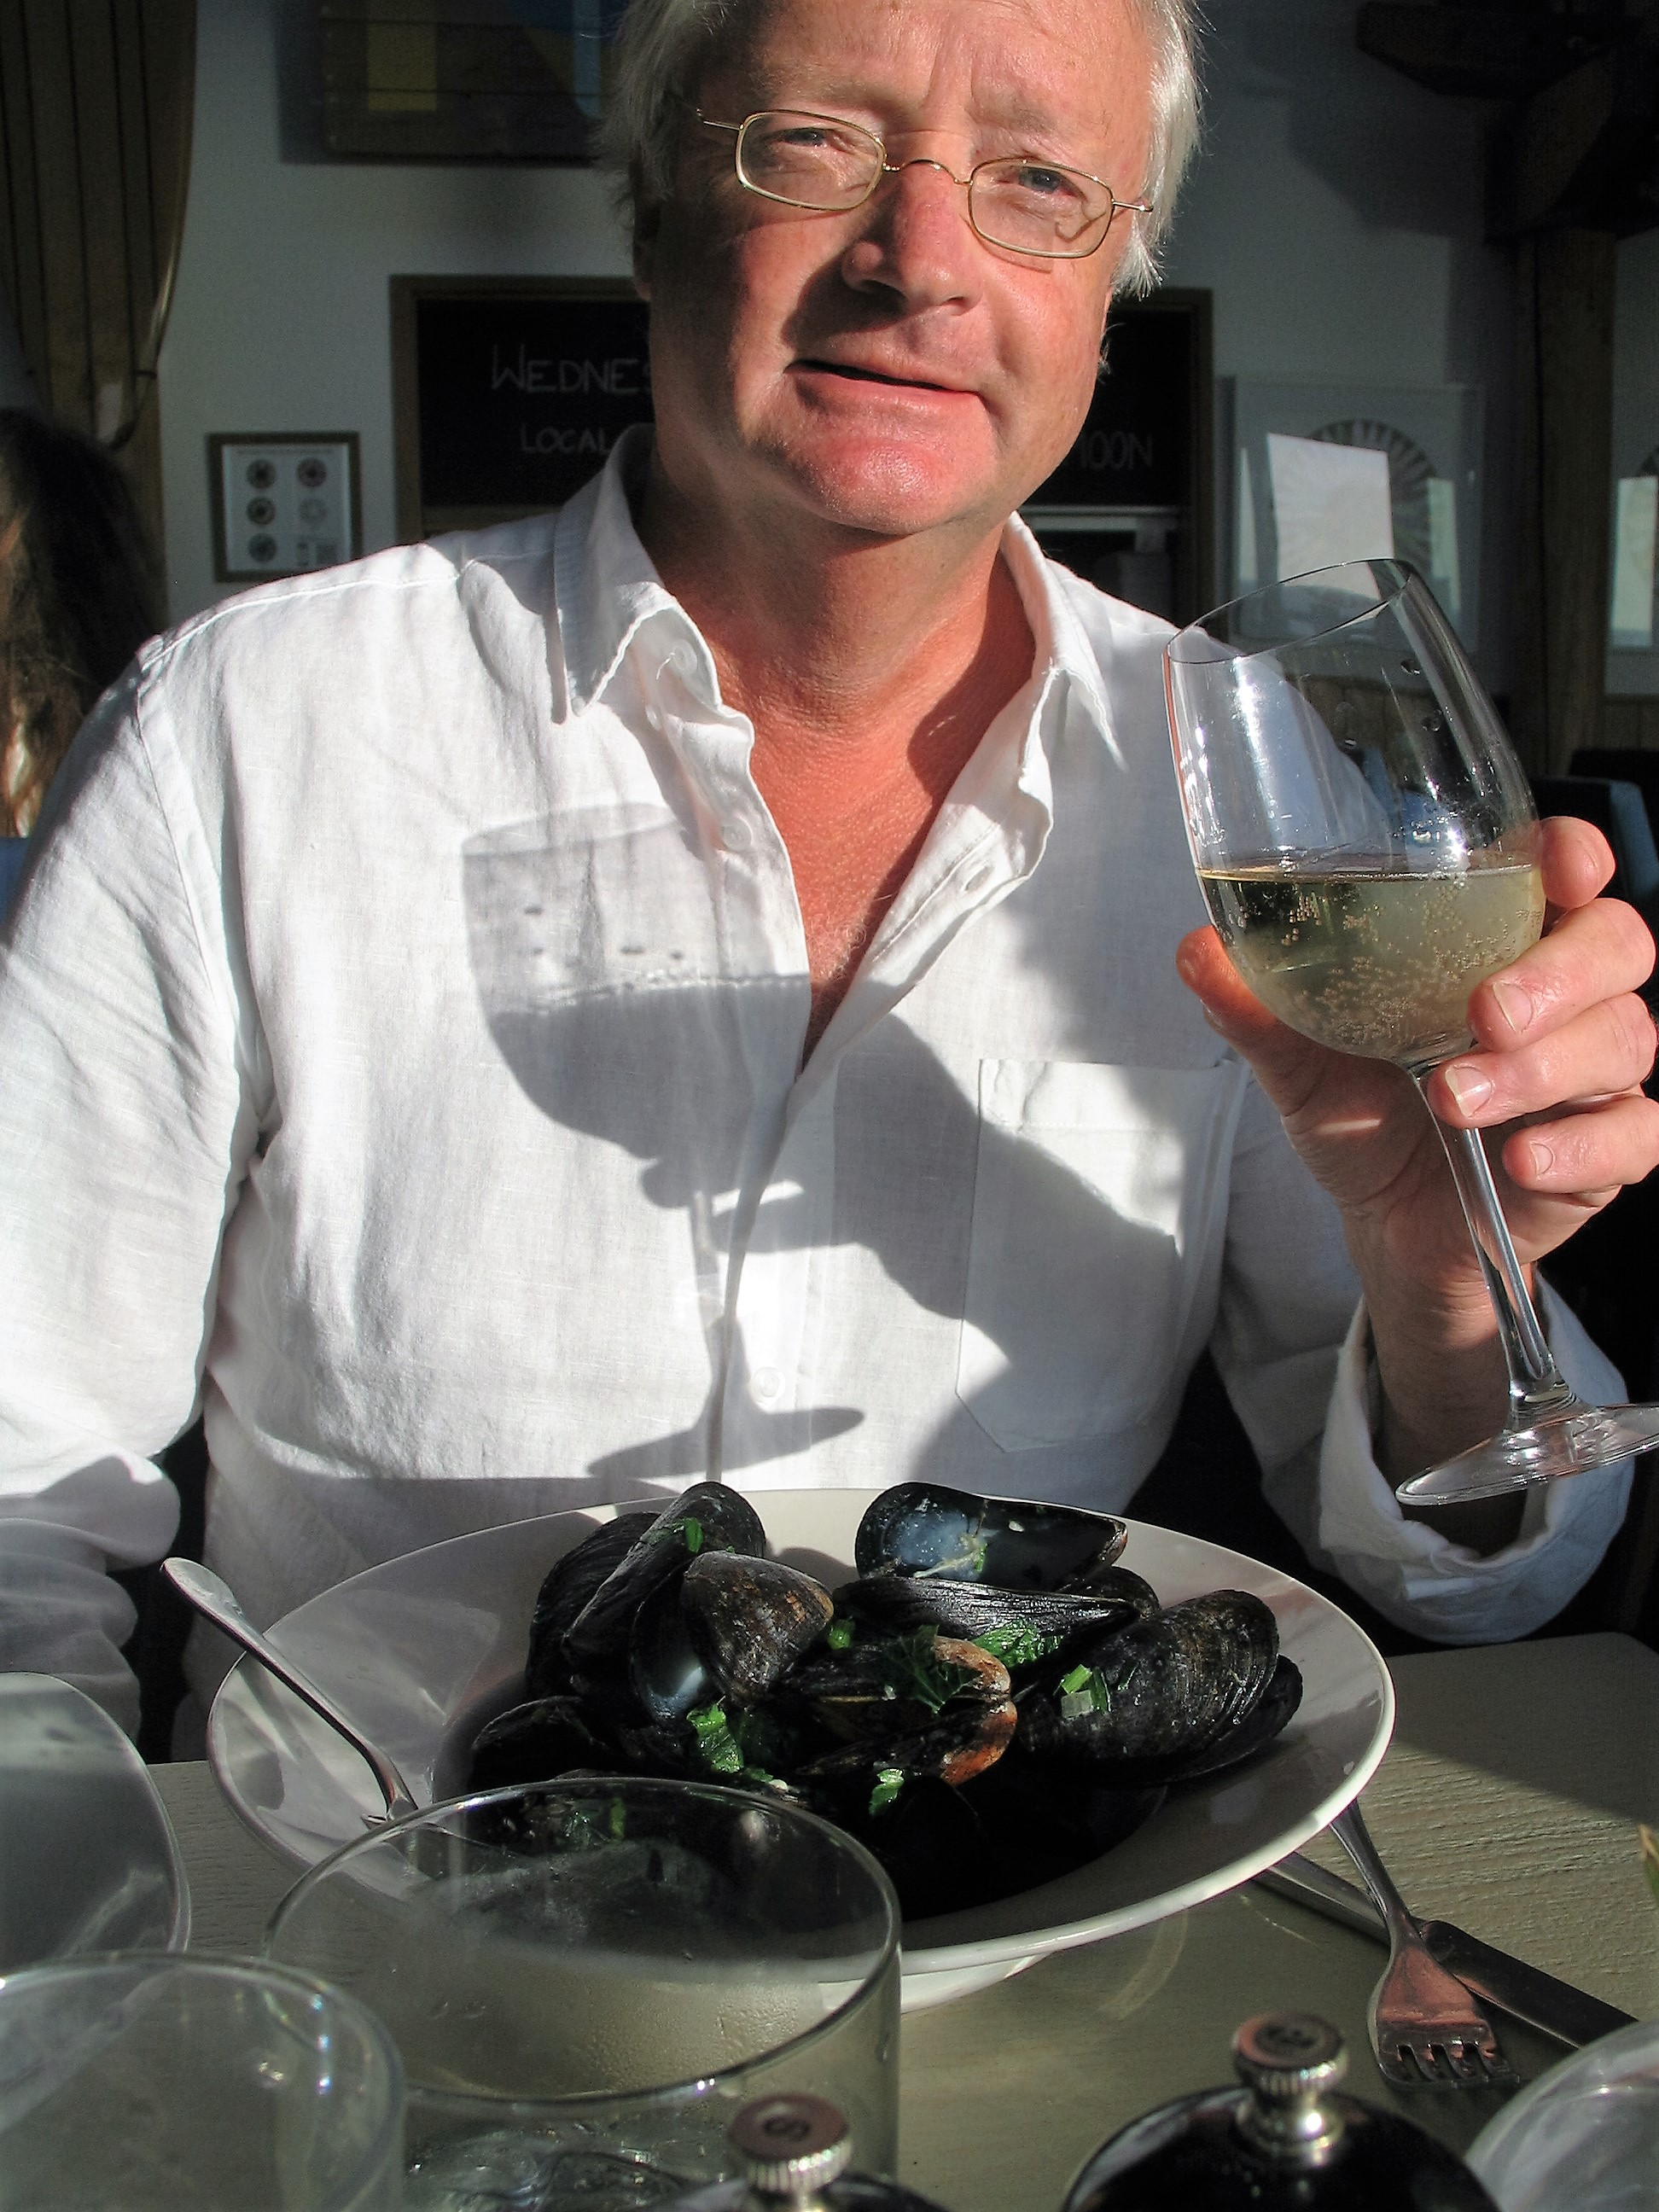 The mussels smelt heavenly mix of the sea and garlic